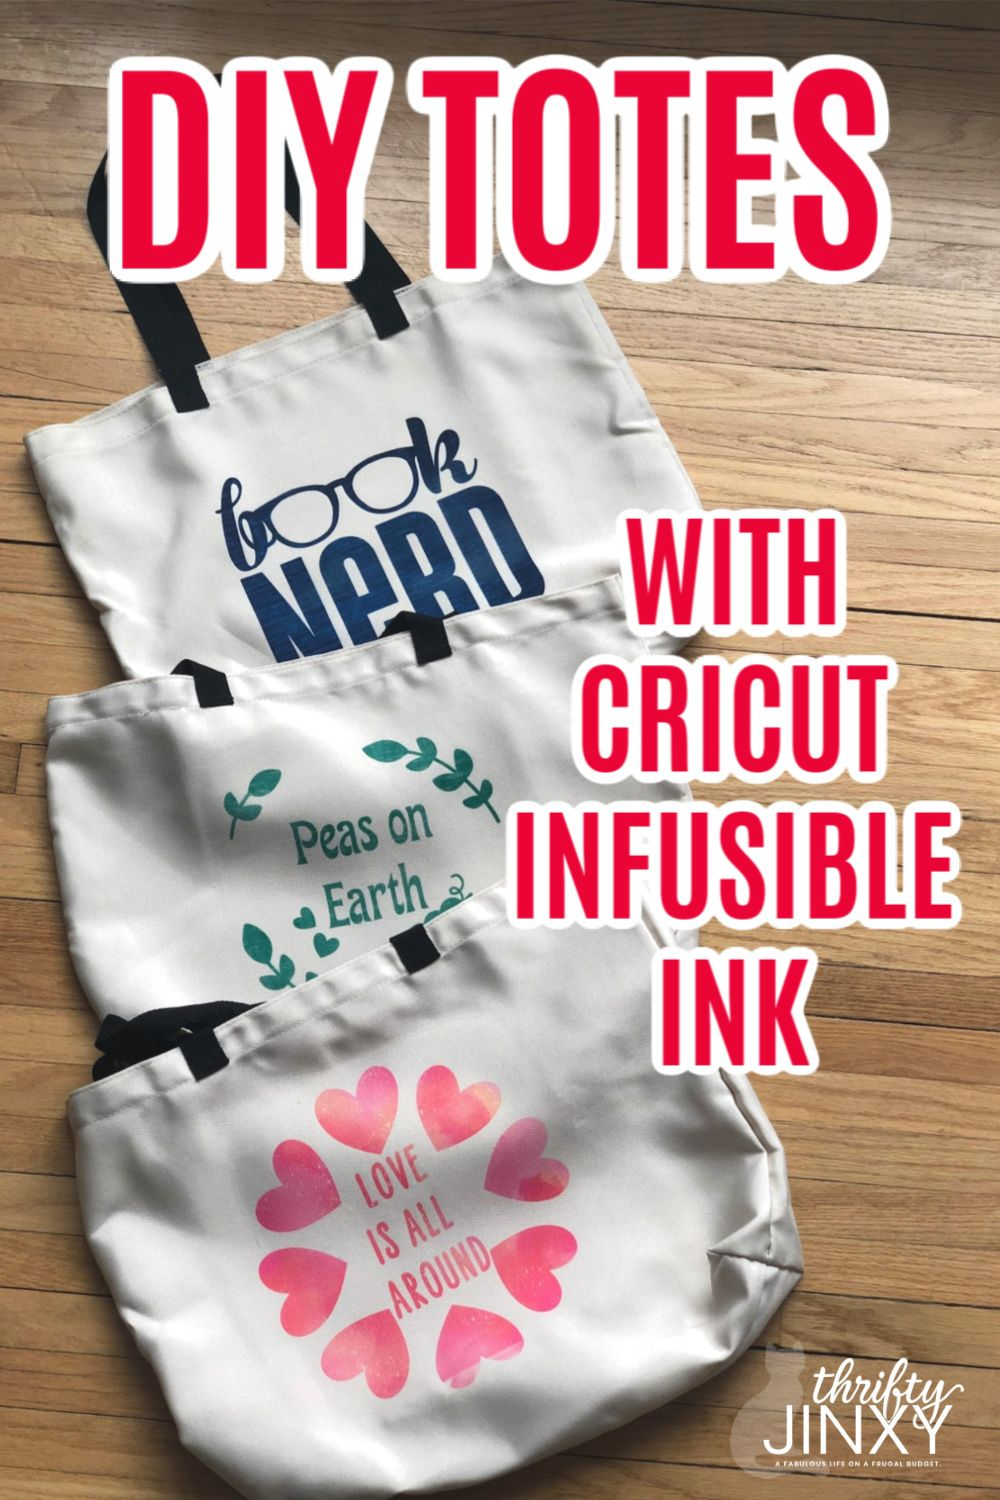 Diy totes with cricut infusible ink infusible ink tote